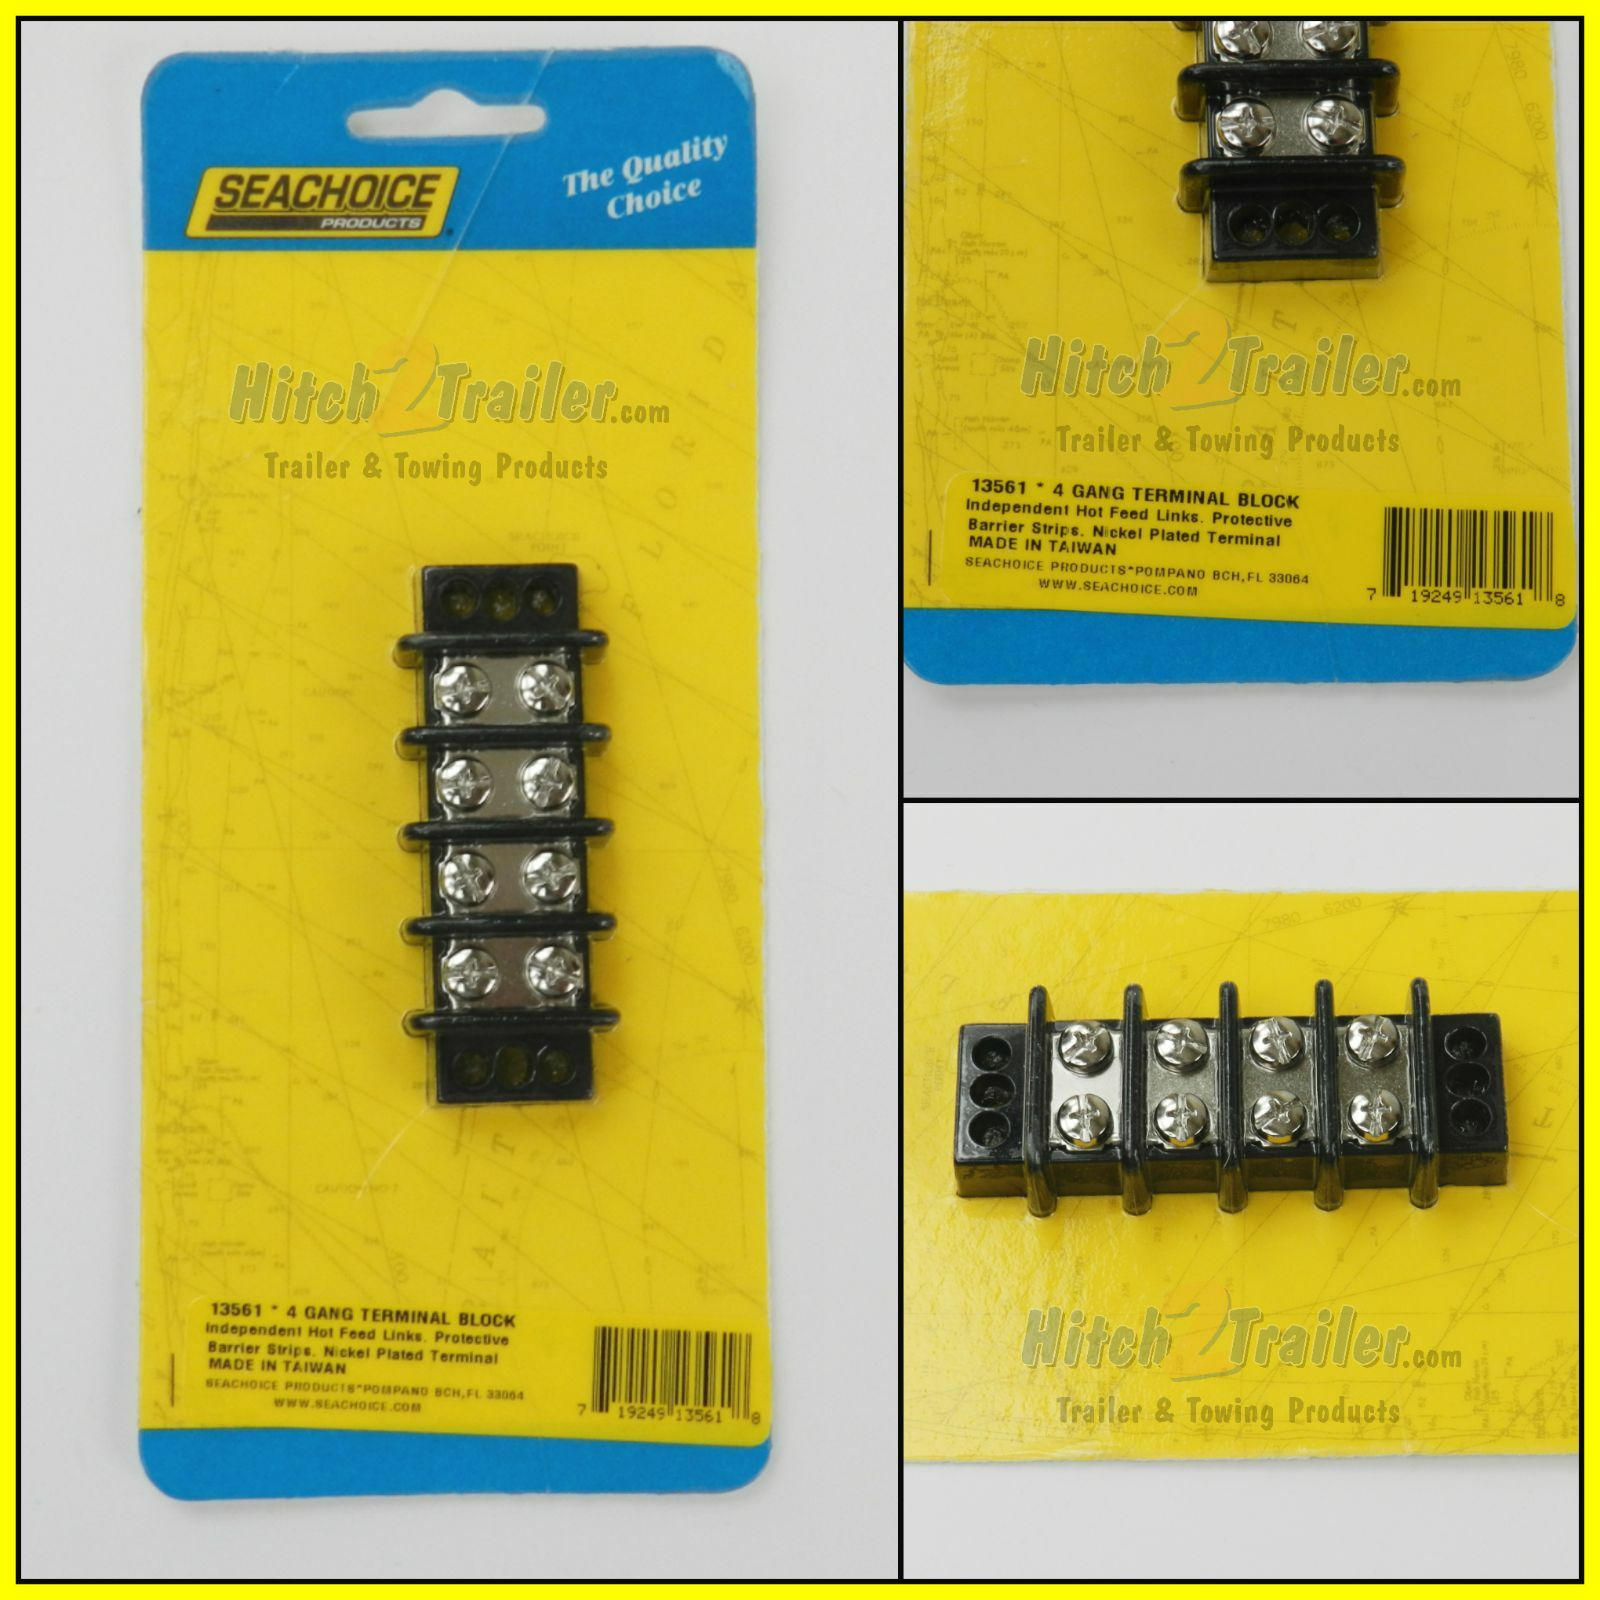 Seachoice Wiring Diagram Library Marine Fuse Box Circuit Breaker Boat 4 Gang Nickel Electric Screw Terminal Junction Block Switch Panel From